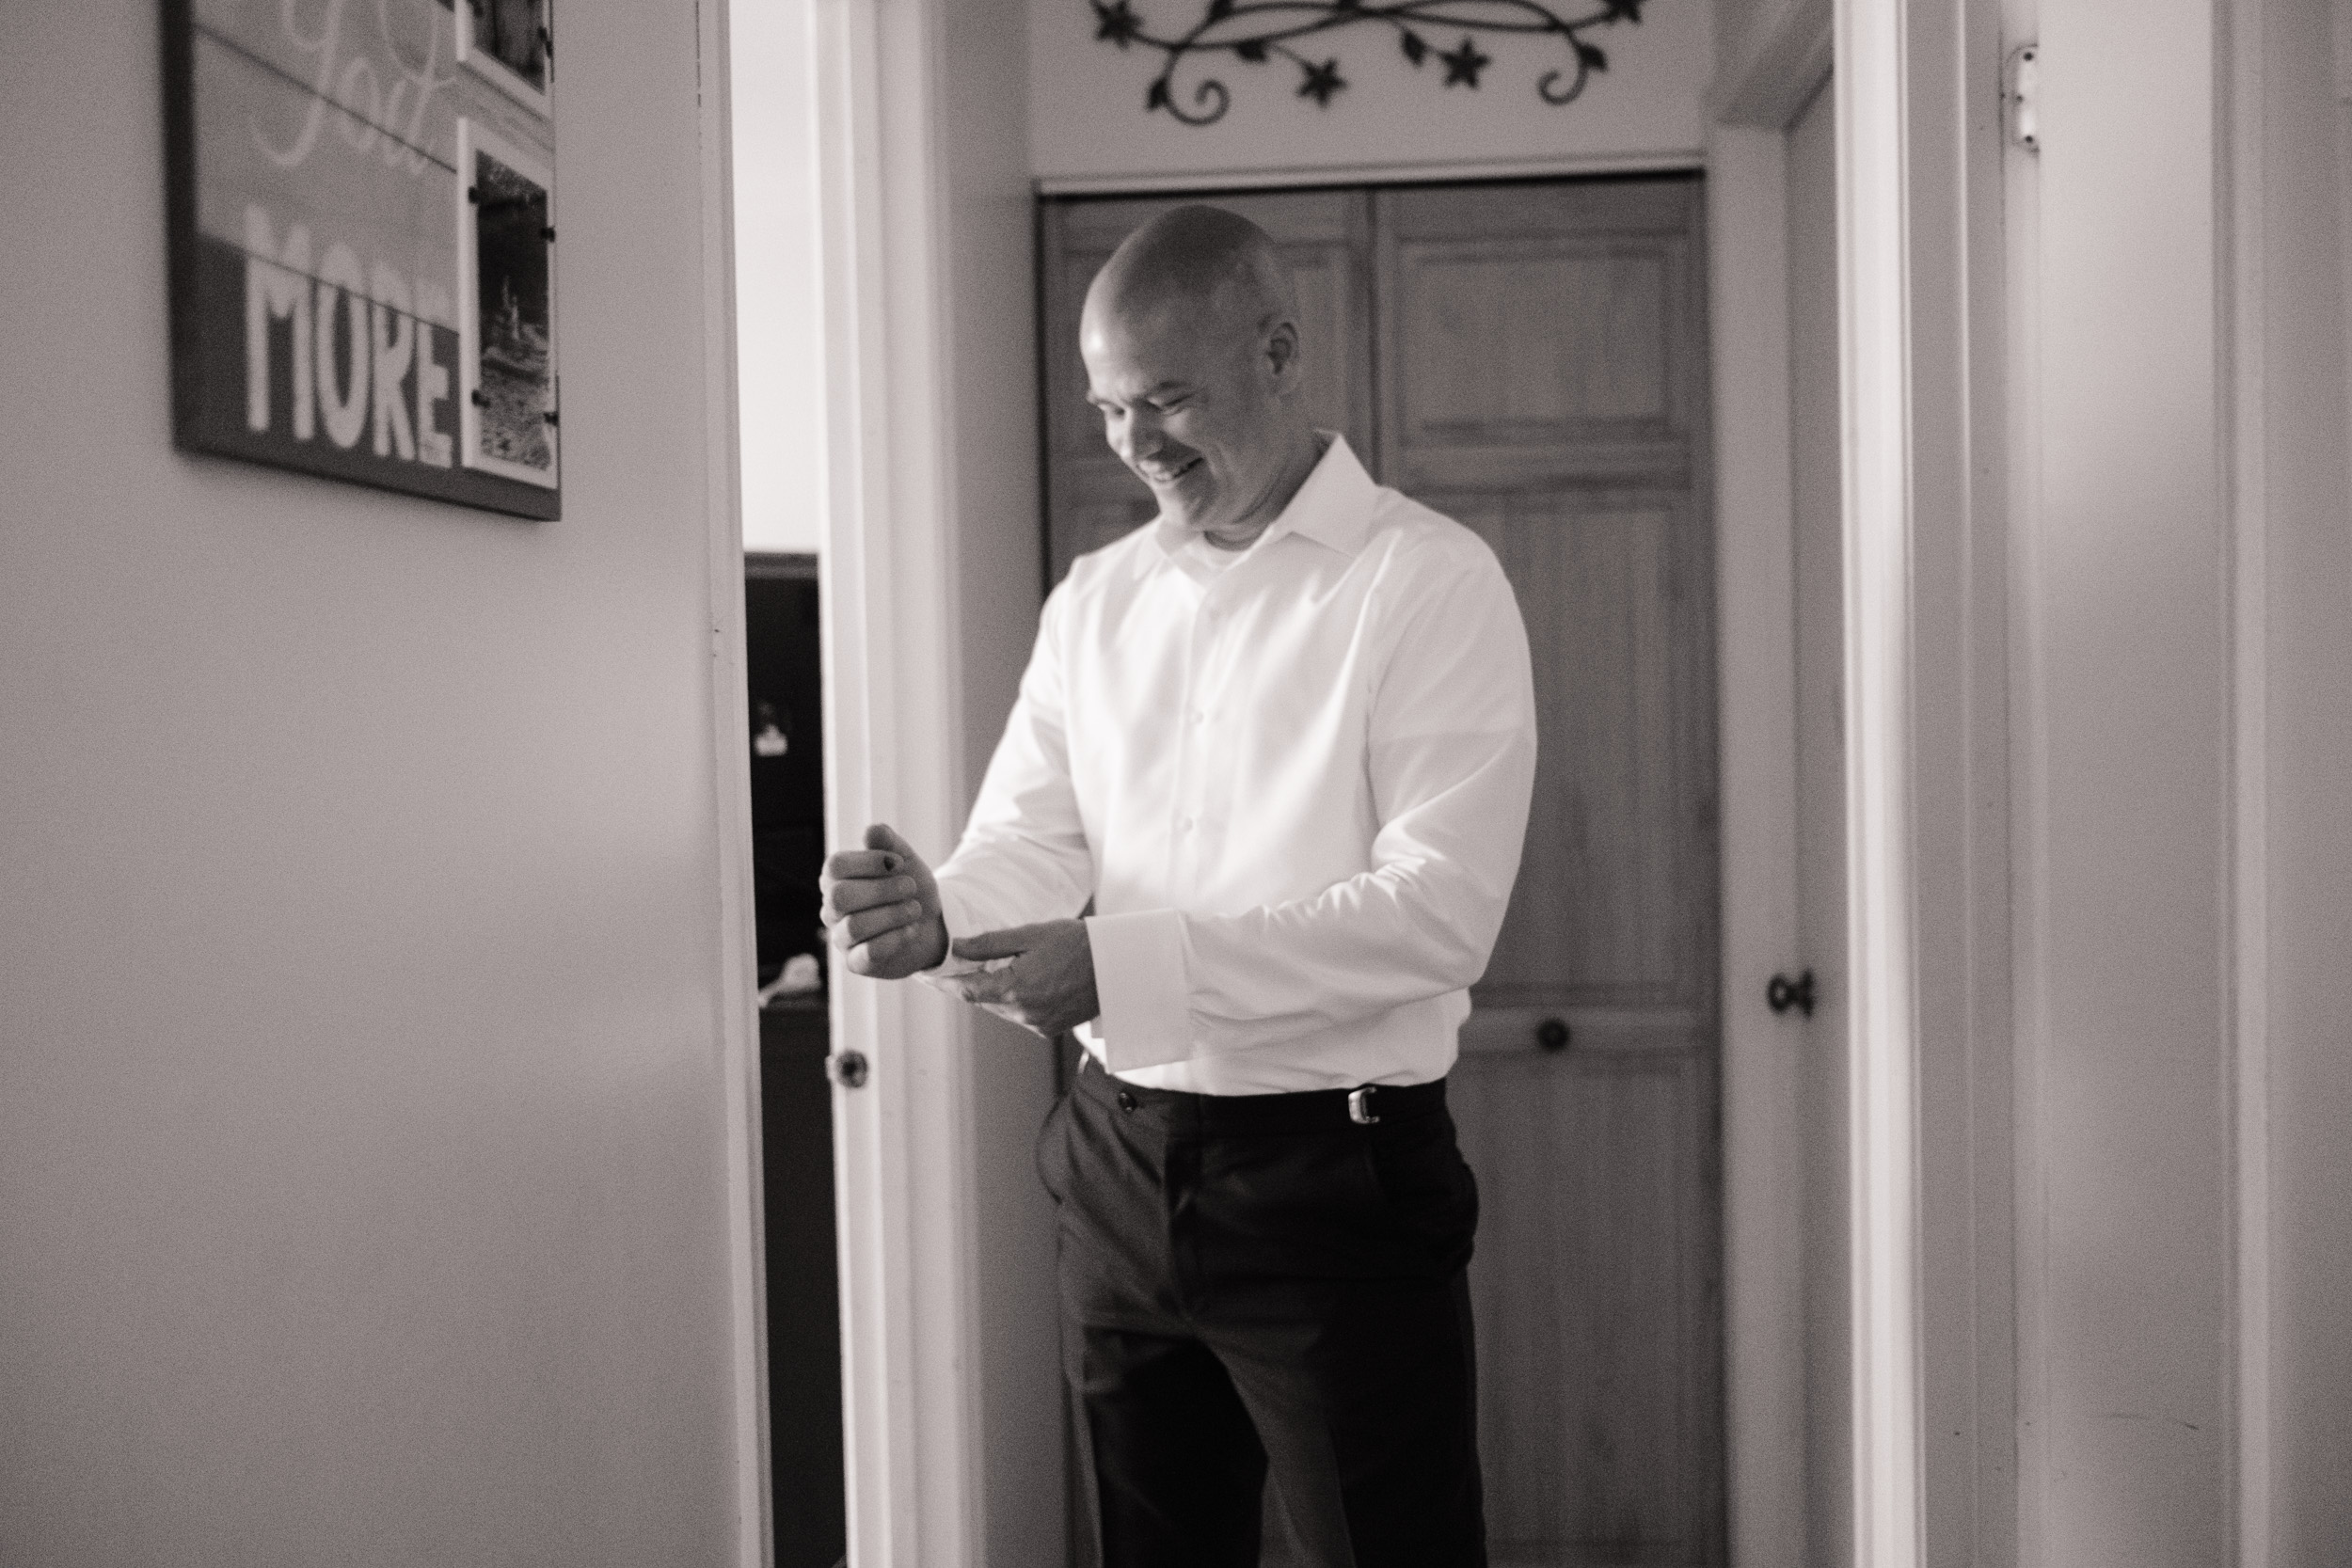 Groom getting ready wedding day black and white the brix